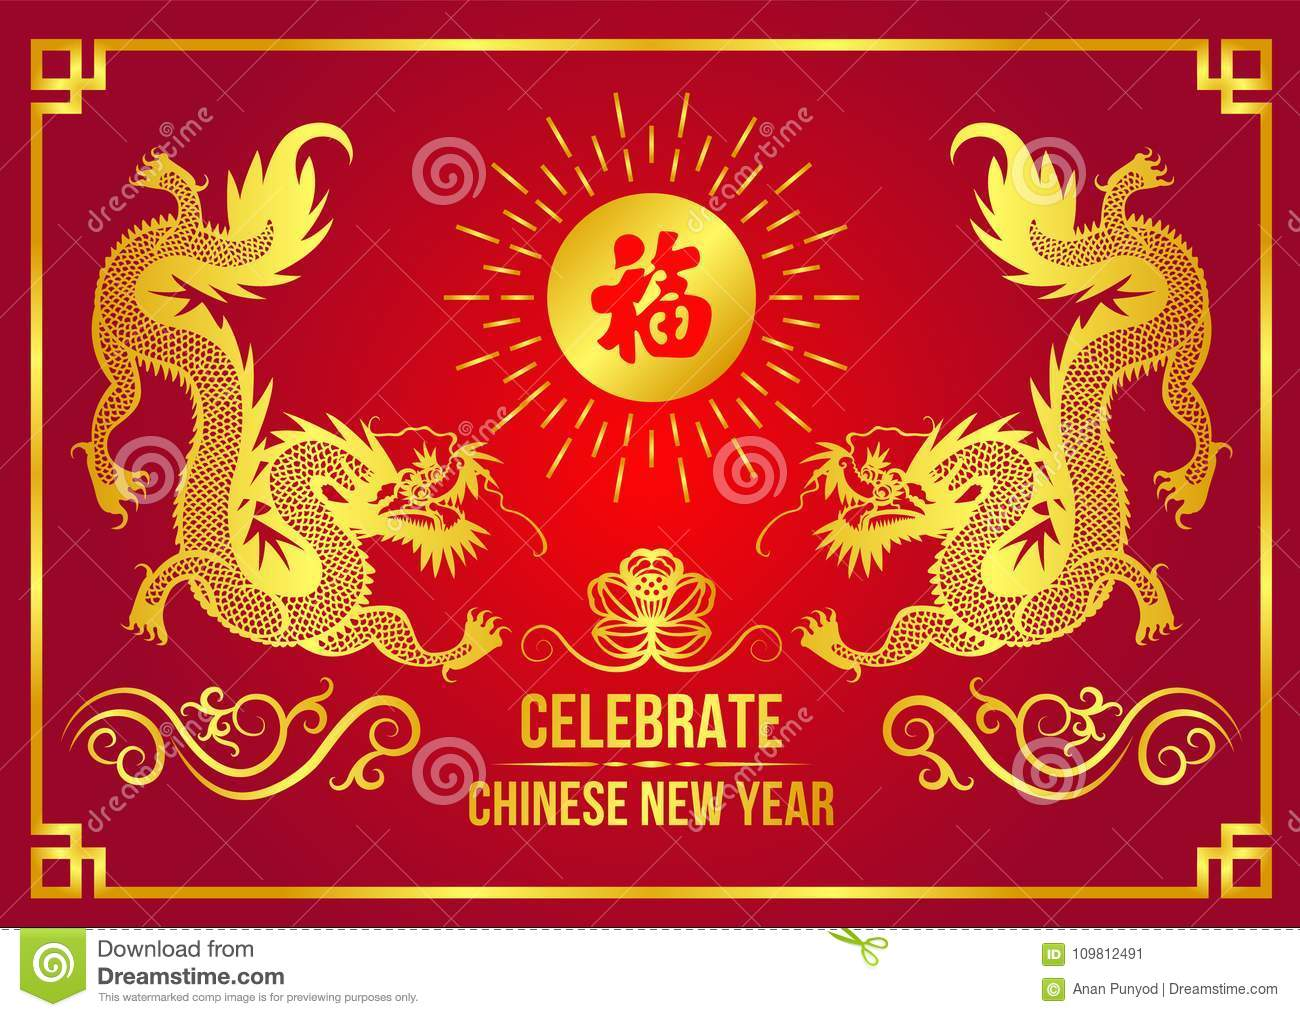 Happy chinese new year card with gold china dragon and sun chinese happy chinese new year card with gold china dragon and sun chinese word mean blessing kristyandbryce Choice Image